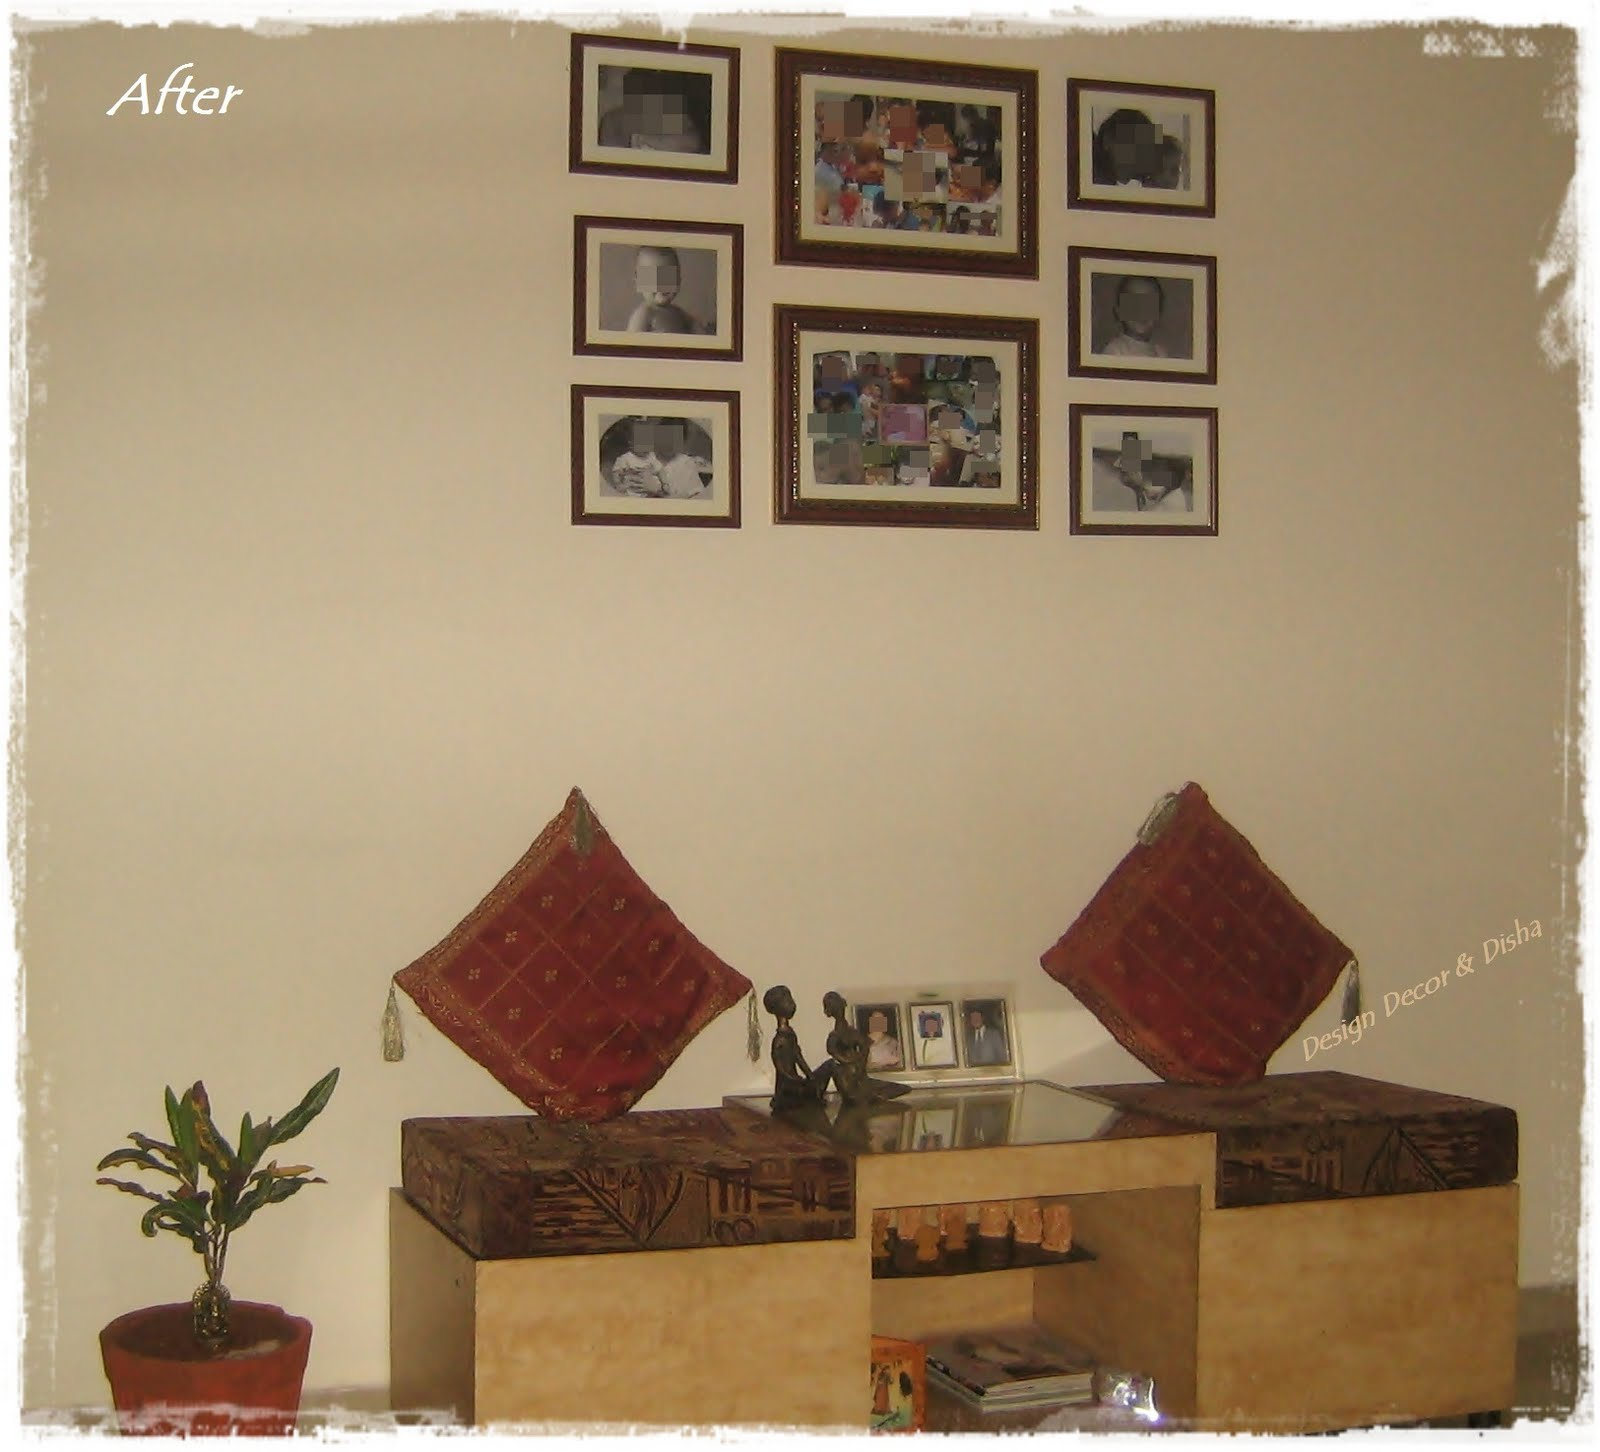 Design decor & disha: june 2011